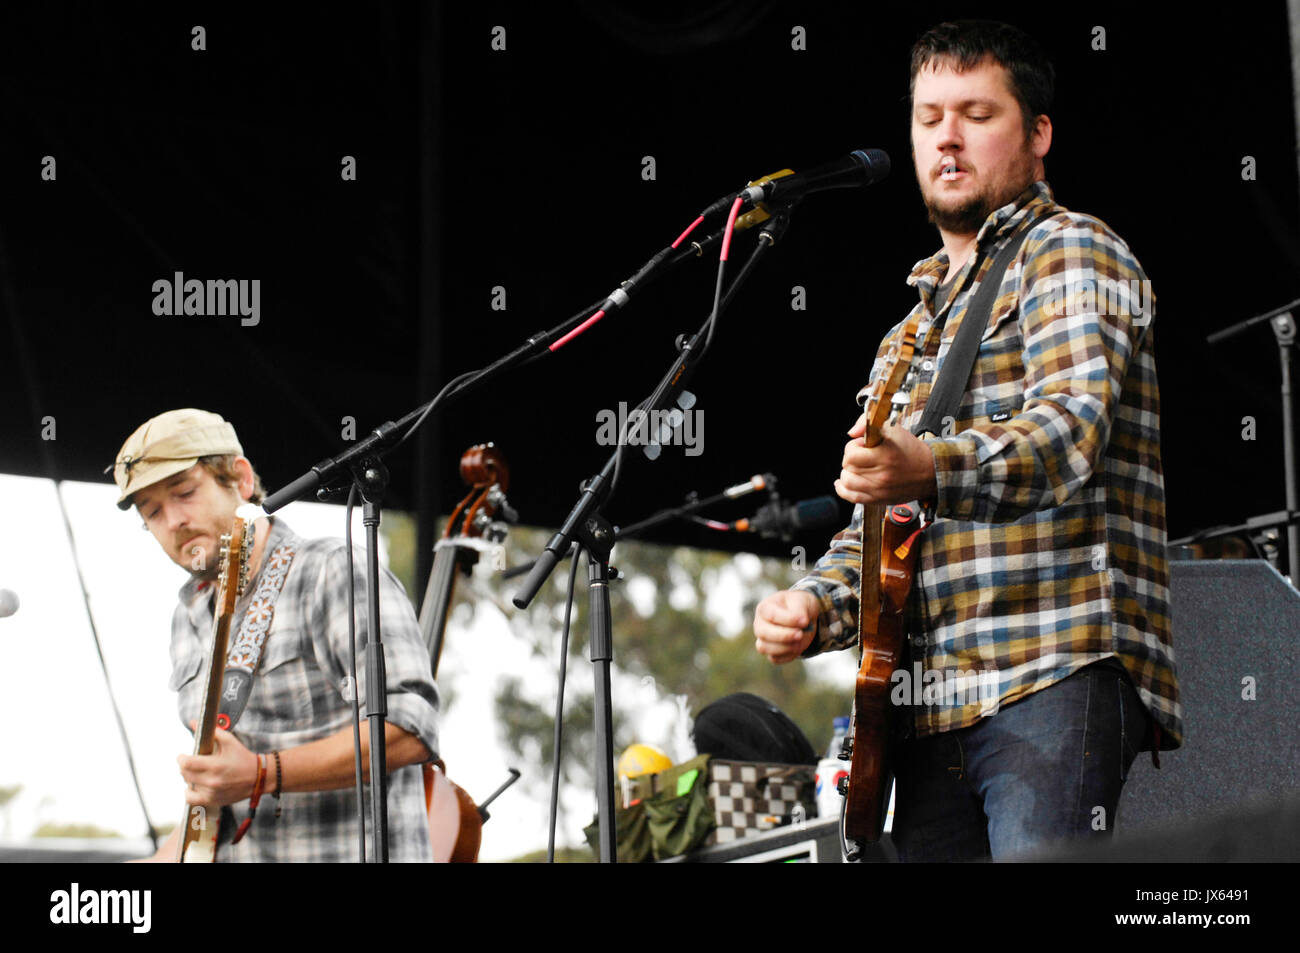 Isaac Brock (r) Modest Mouse performs 2009 Outside Lands Festival Golden Gate Park August 30,2009 San Francisco. - Stock Image